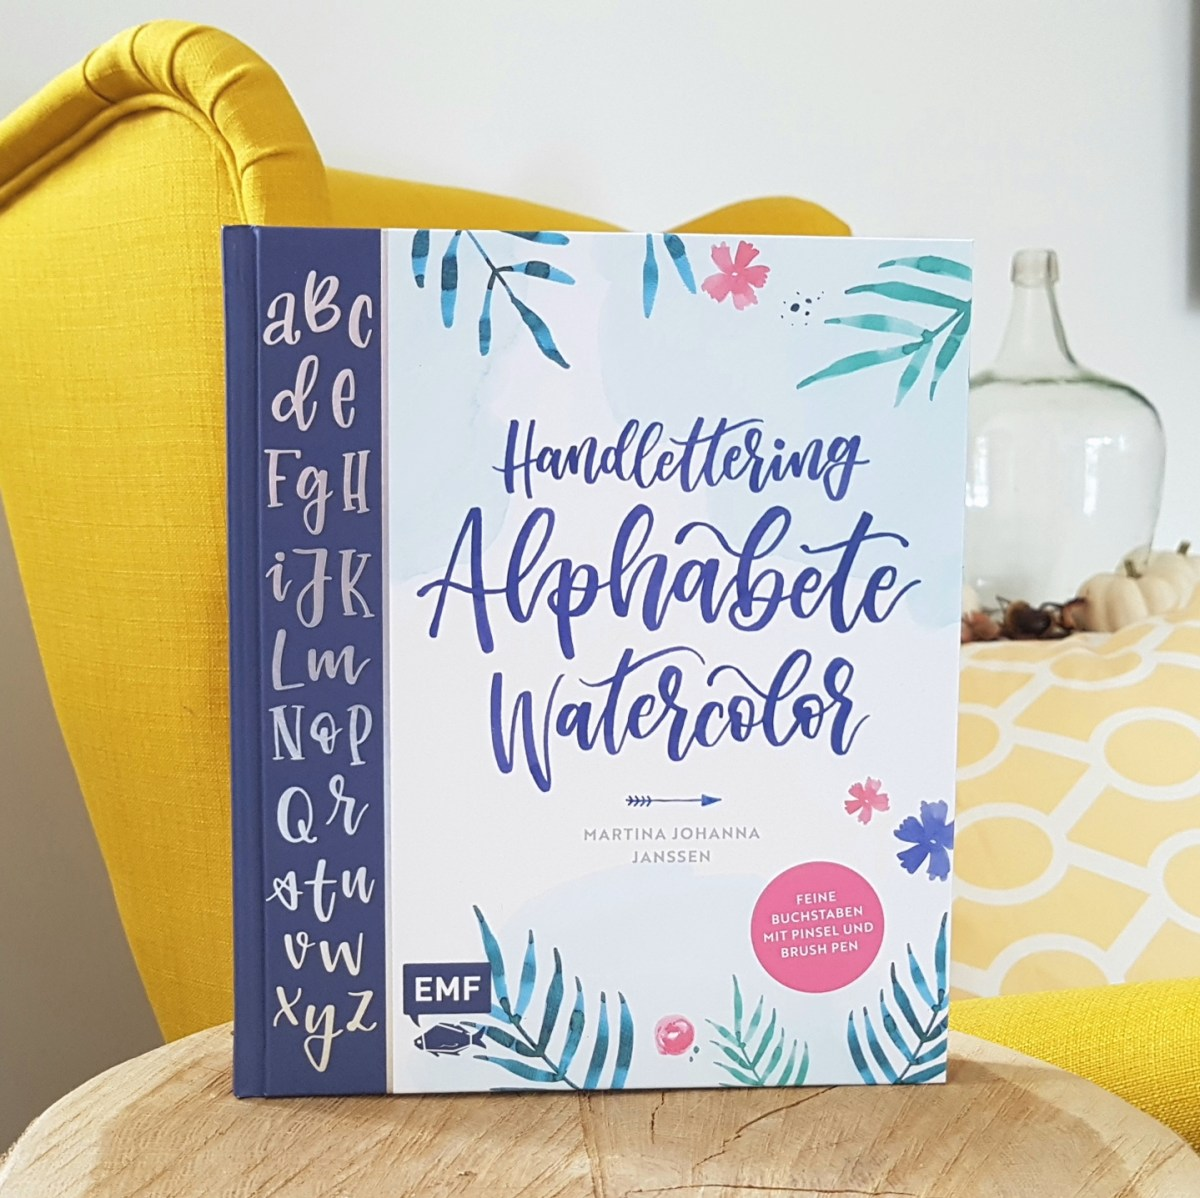 Handlettering Alphabete Watercolor von Martina Johanna Janssen (Rezension)